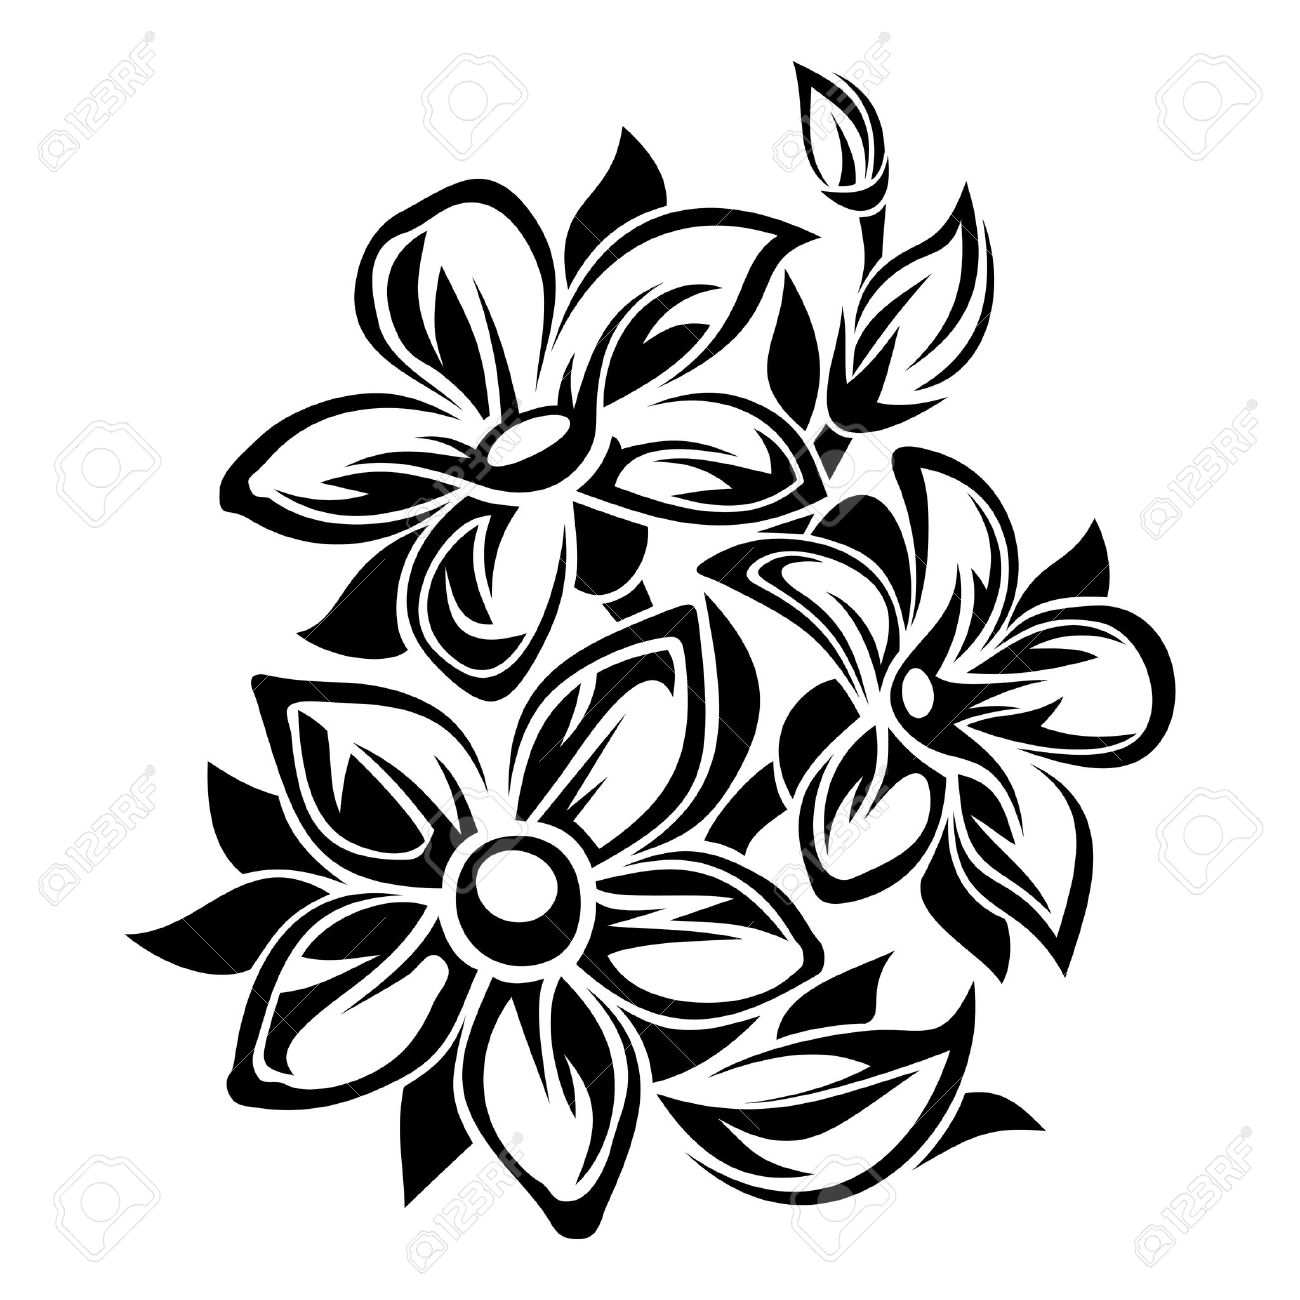 Flowers black and white ornament vector illustration royalty free flowers black and white ornament vector illustration stock vector 36424810 mightylinksfo